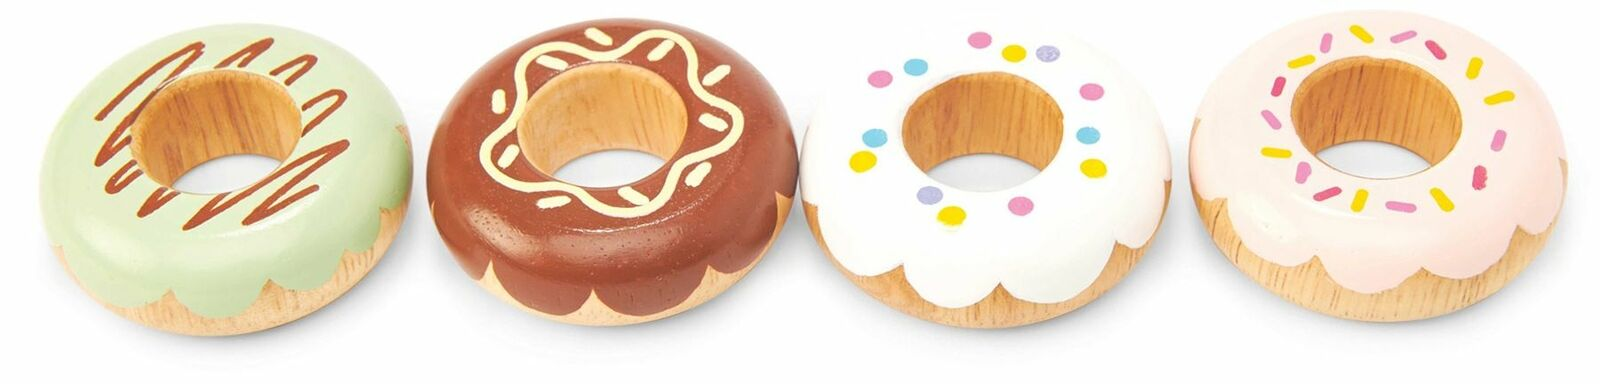 Le Toy Van Honeybake Wooden Doughnuts